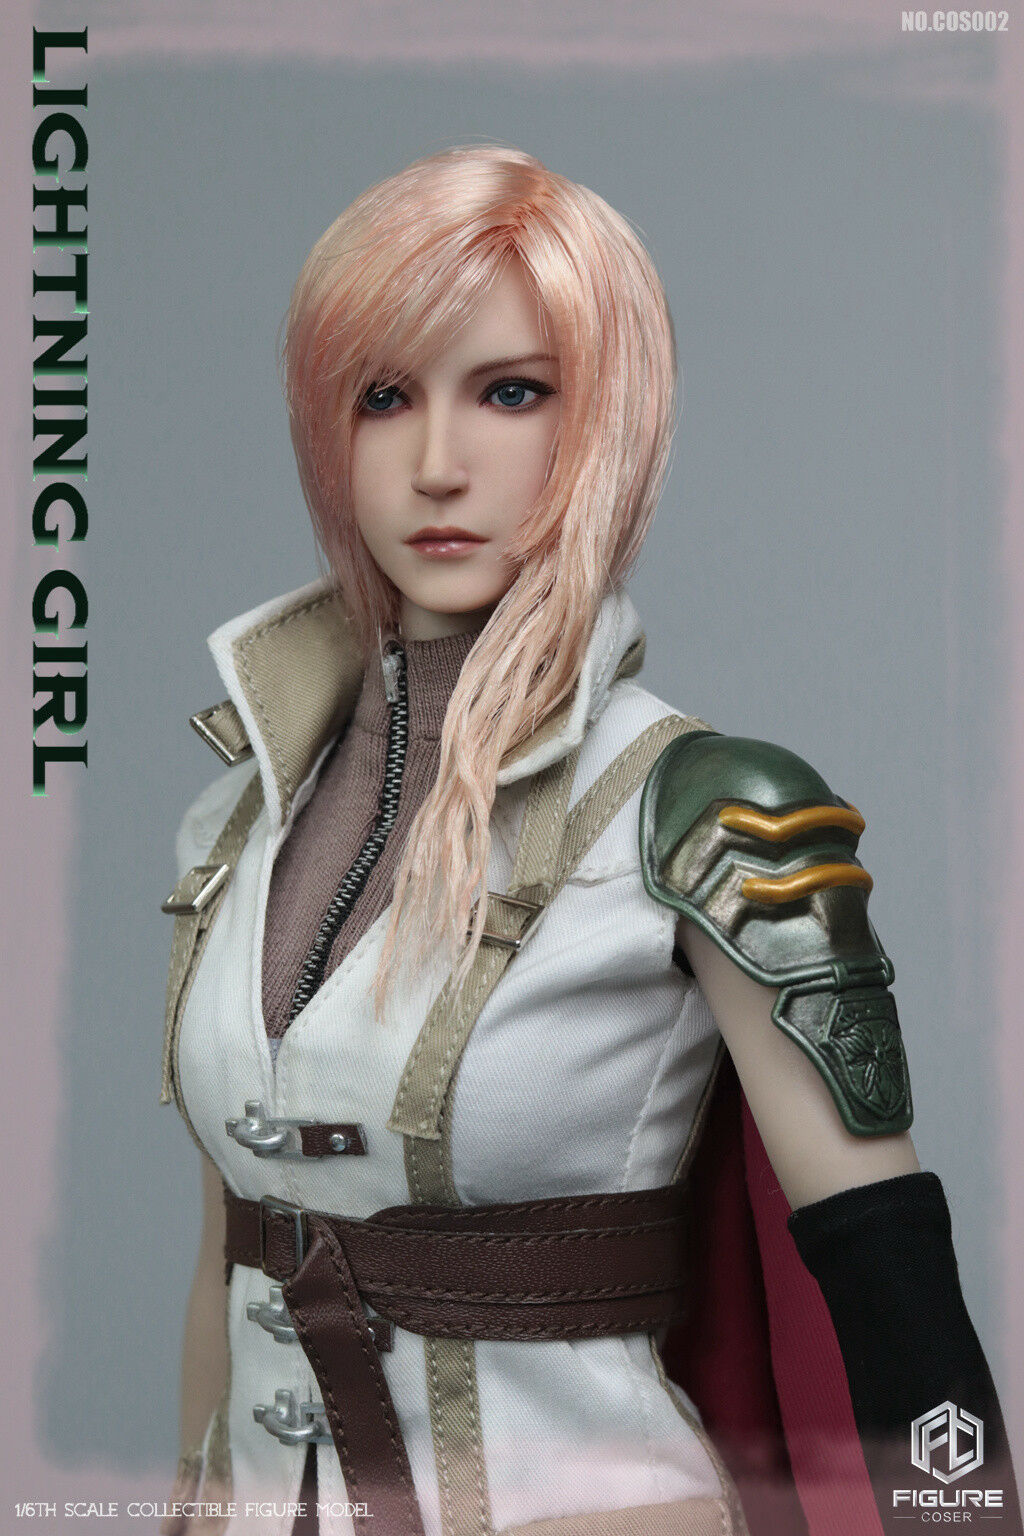 FIGURECOSER 1 6 COS002 Lightning Girl Head Carving&Clothes Accessories F PH Body